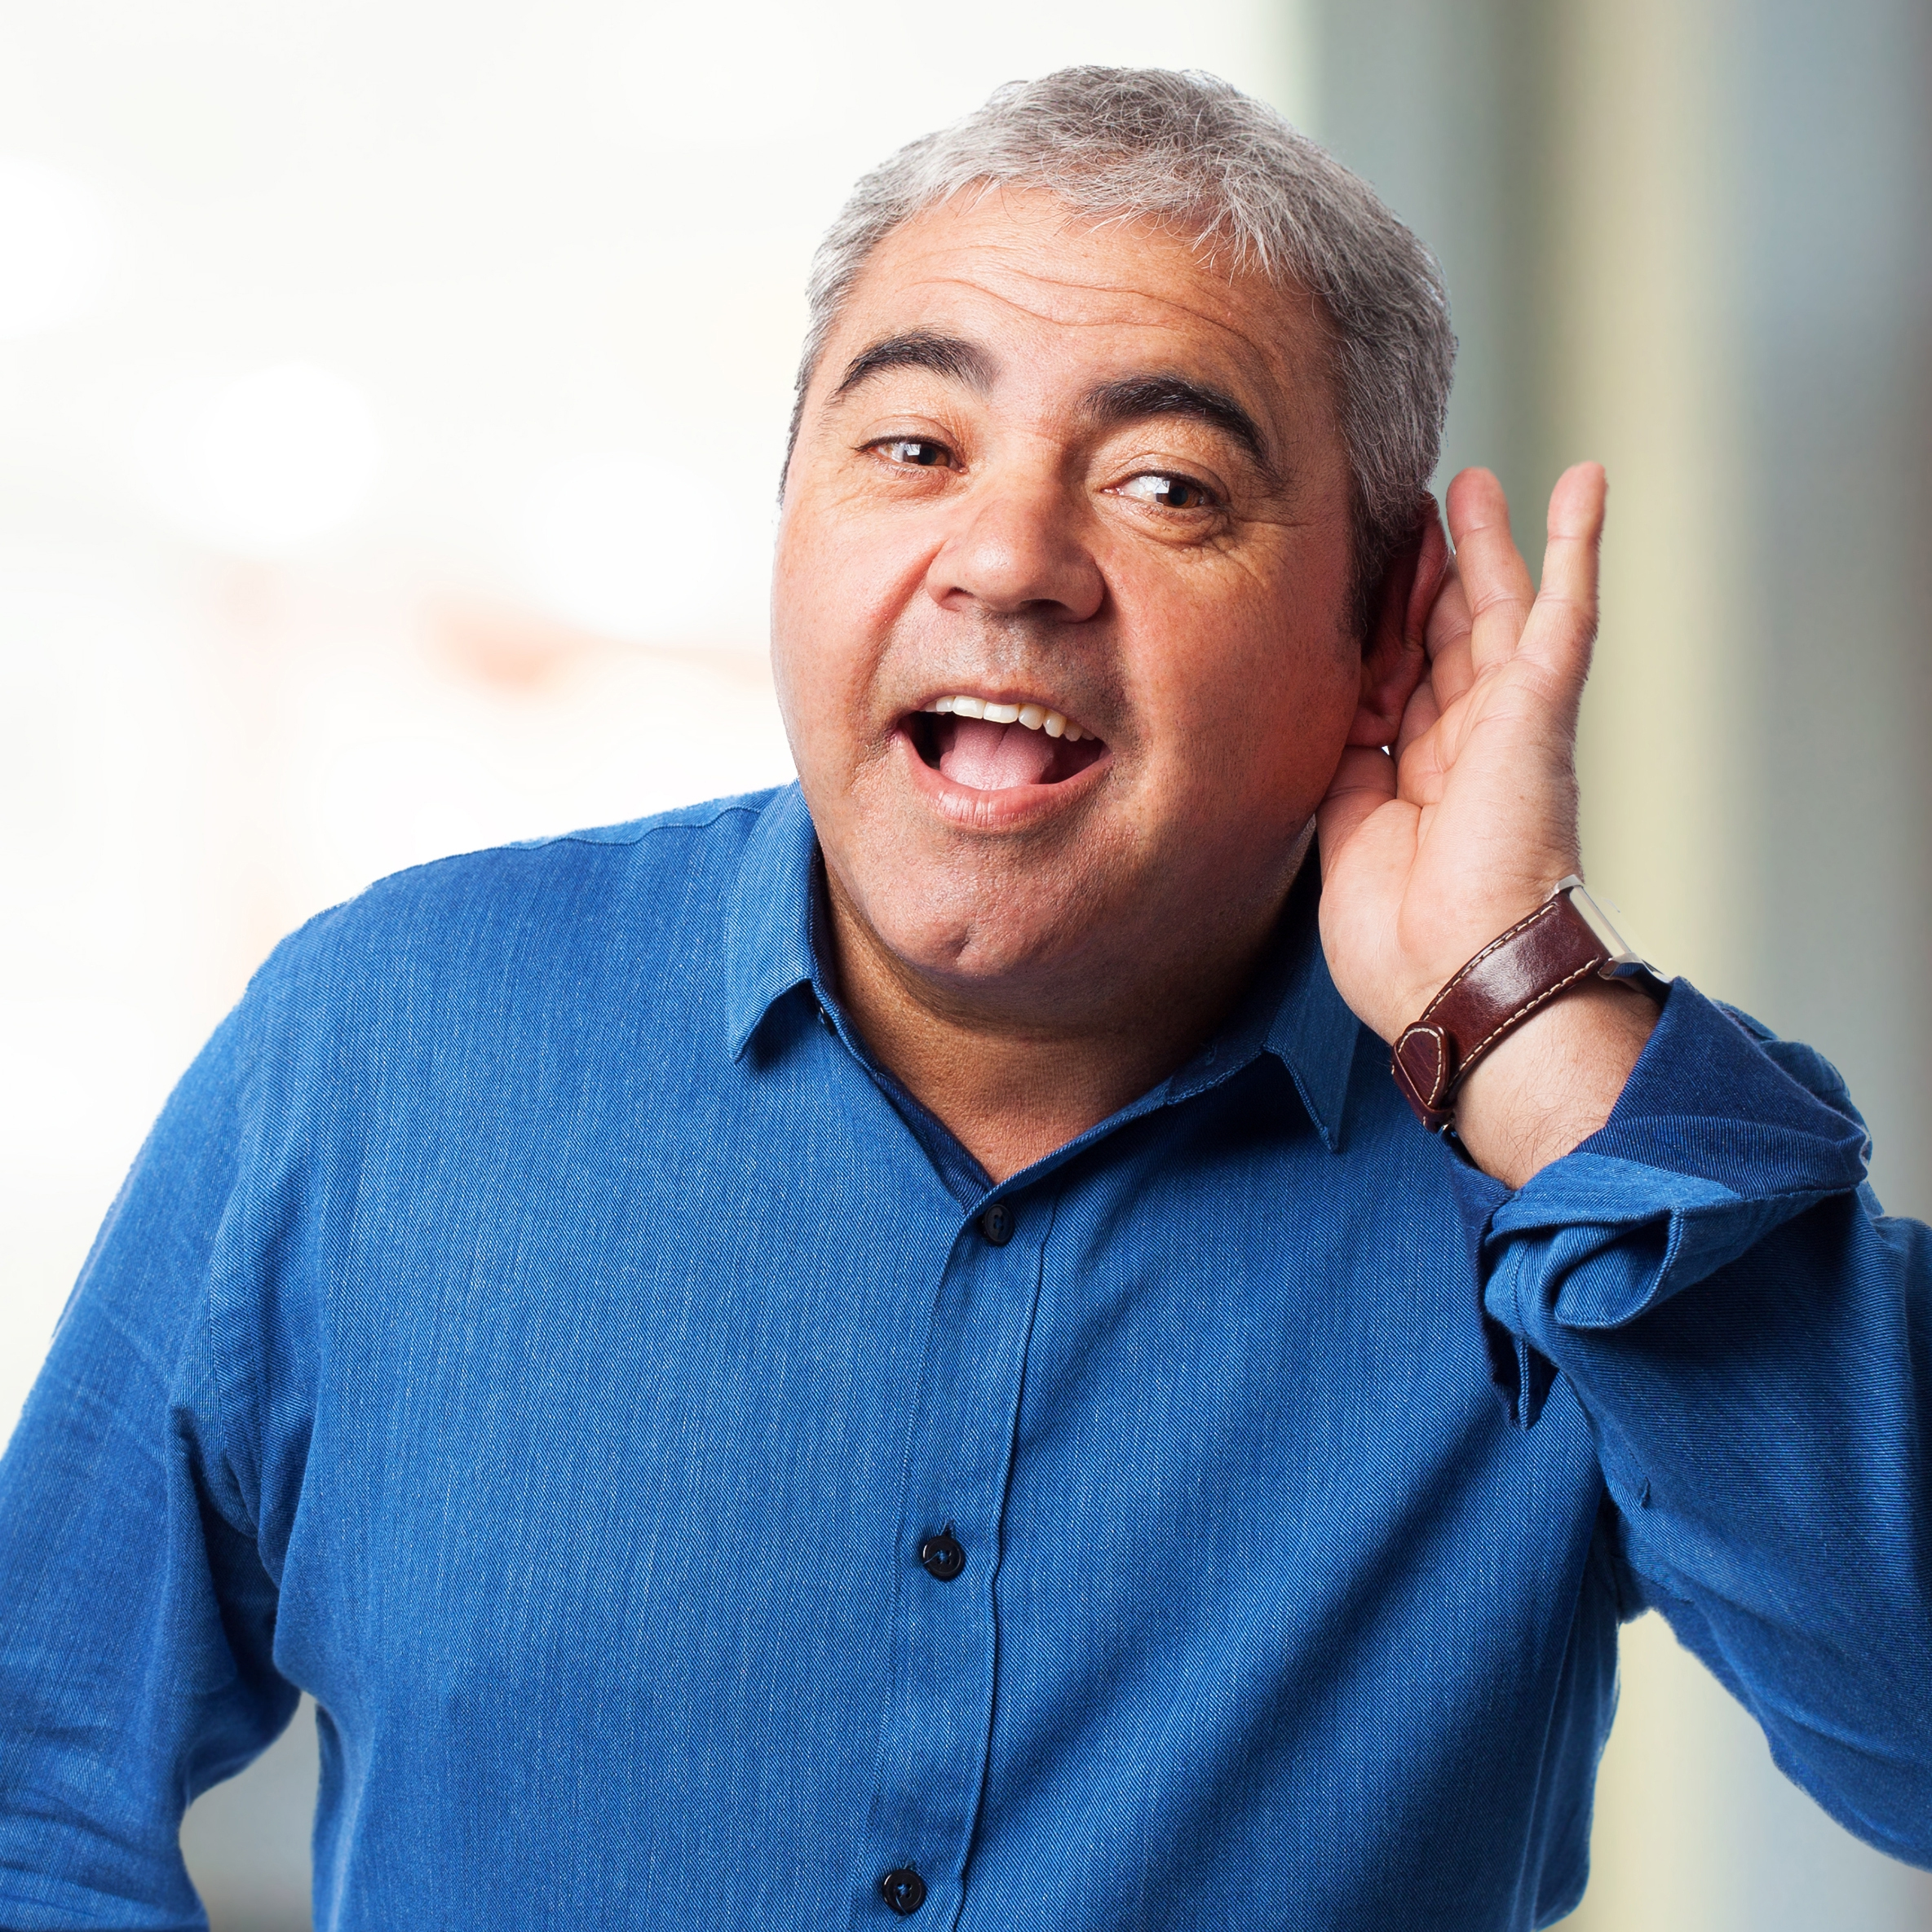 a middle-aged man holding his hand to his ear, trying to listen and hear something